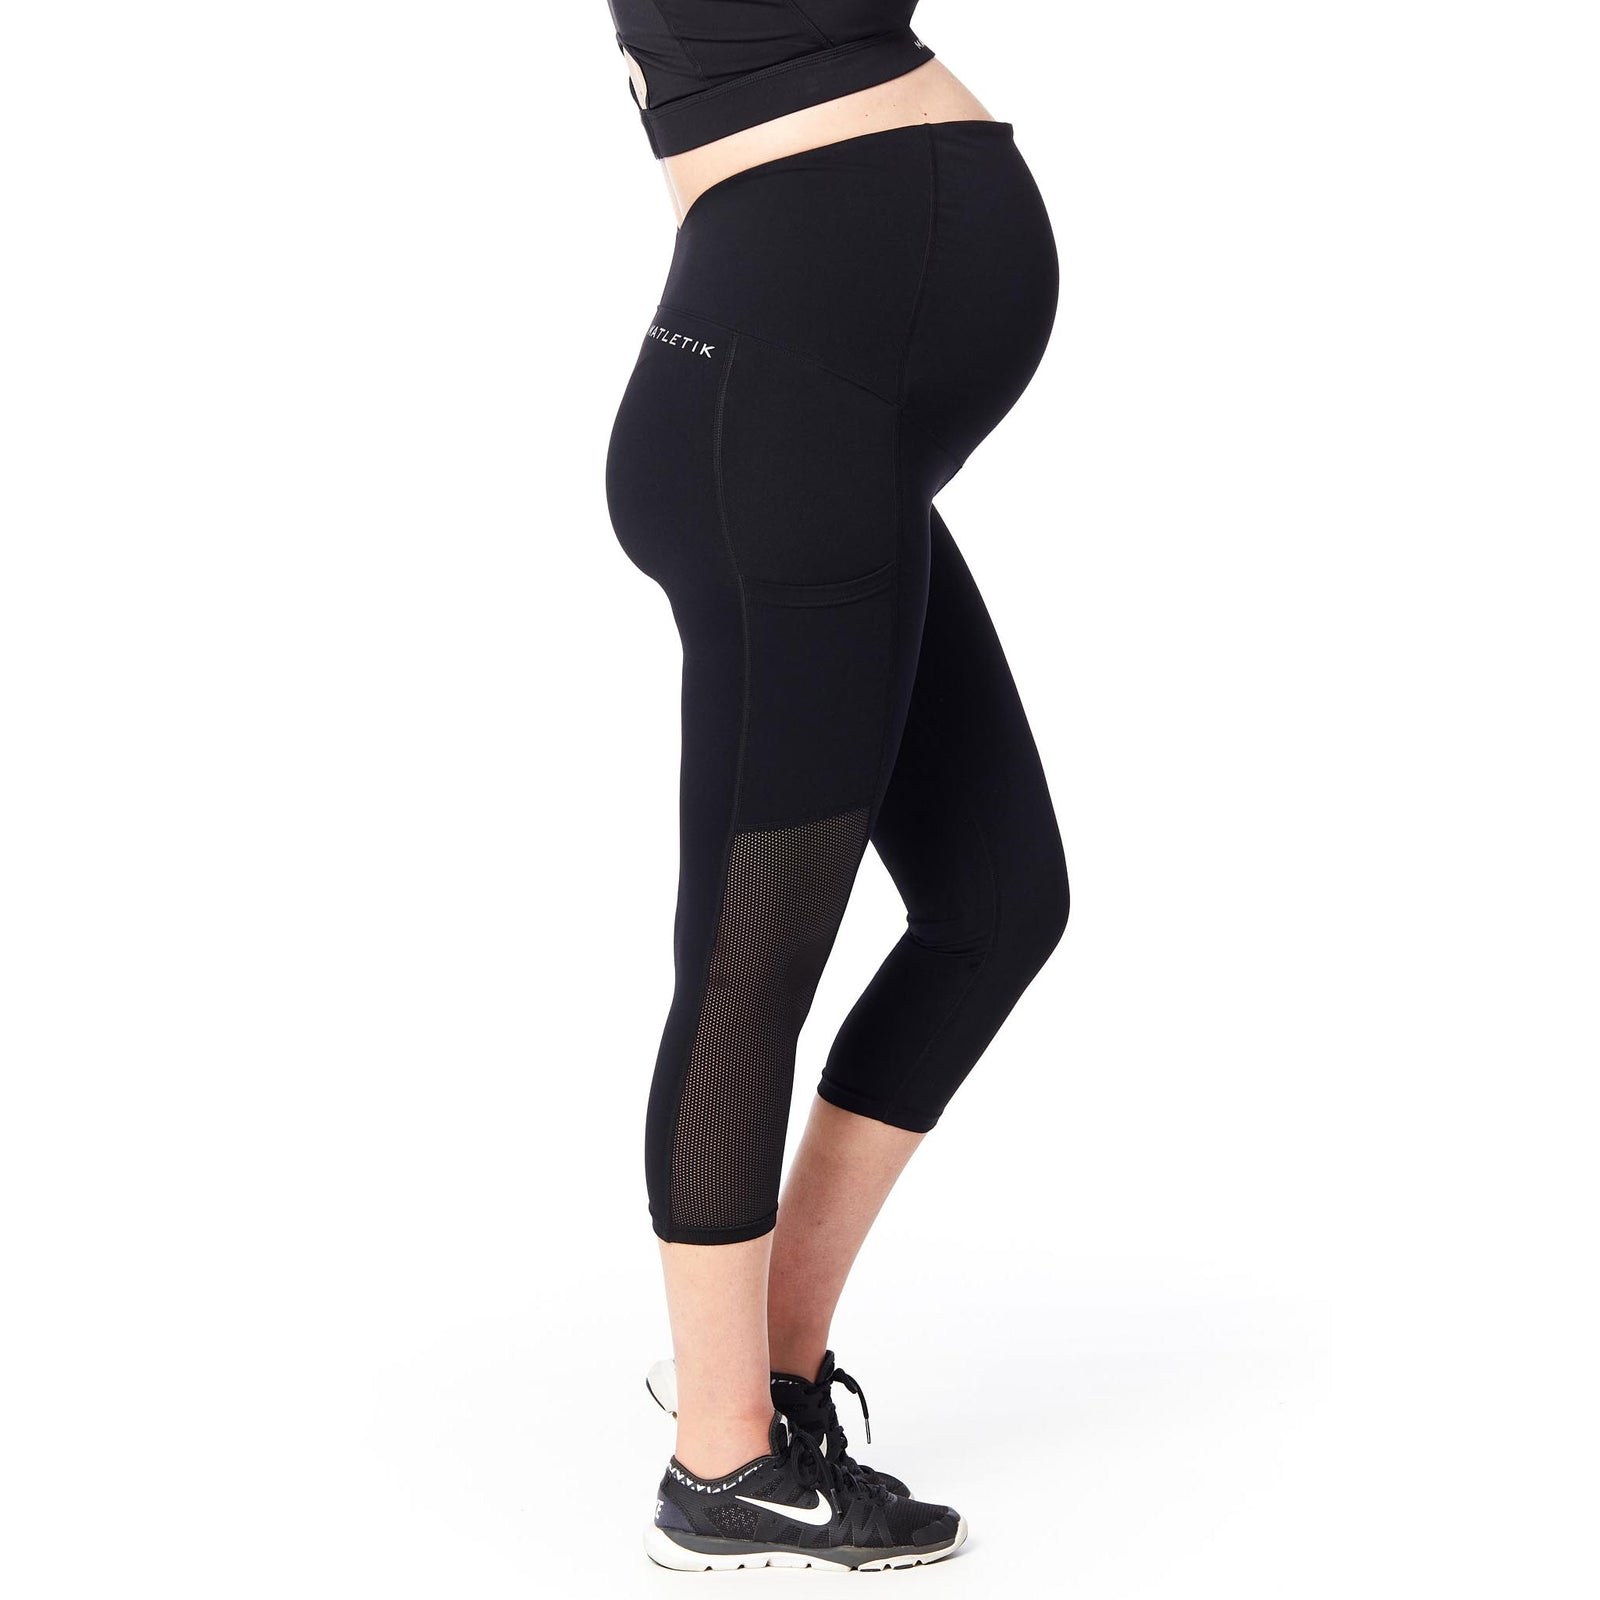 ESPRIT Capri legging with fold over panel and side pocket